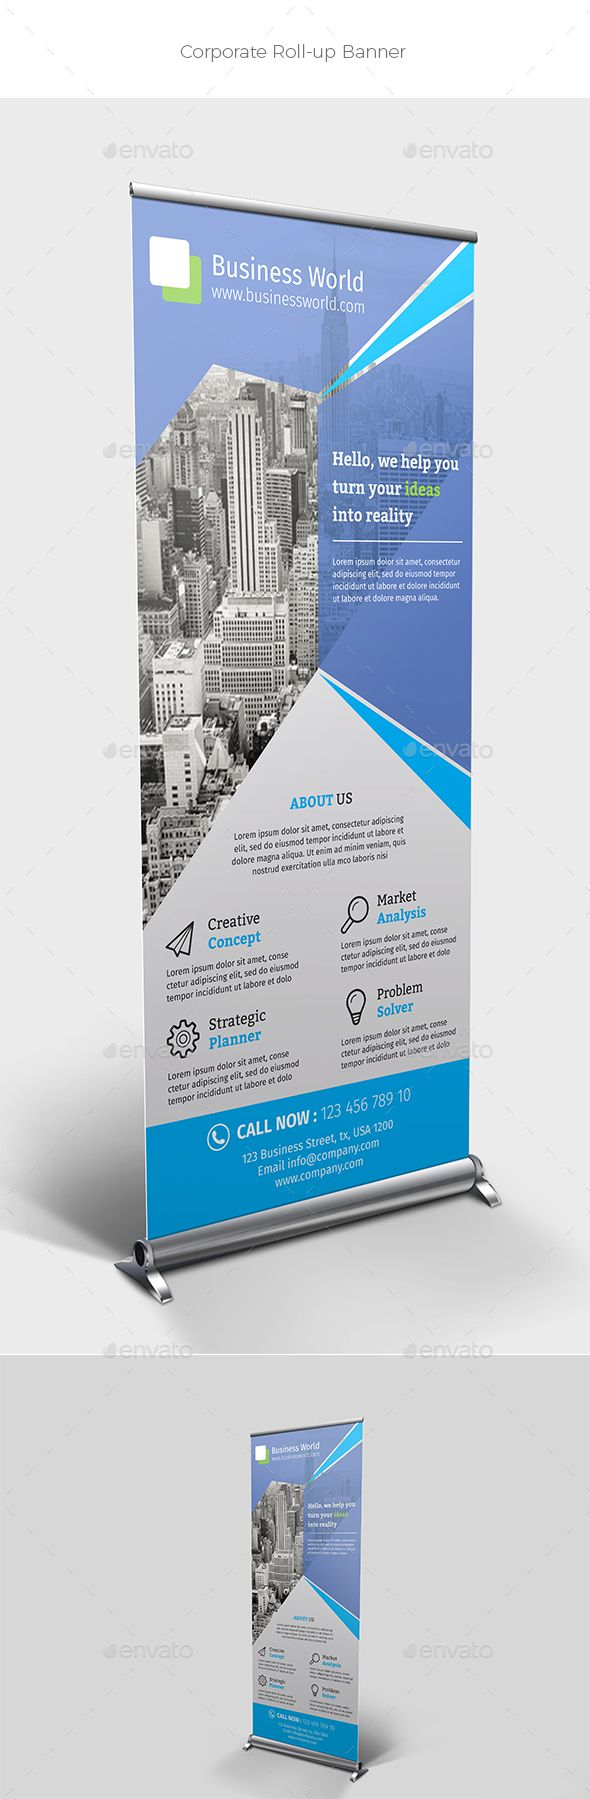 11 best Roll Up Banner images on Pinterest | Banner, Banner template ...